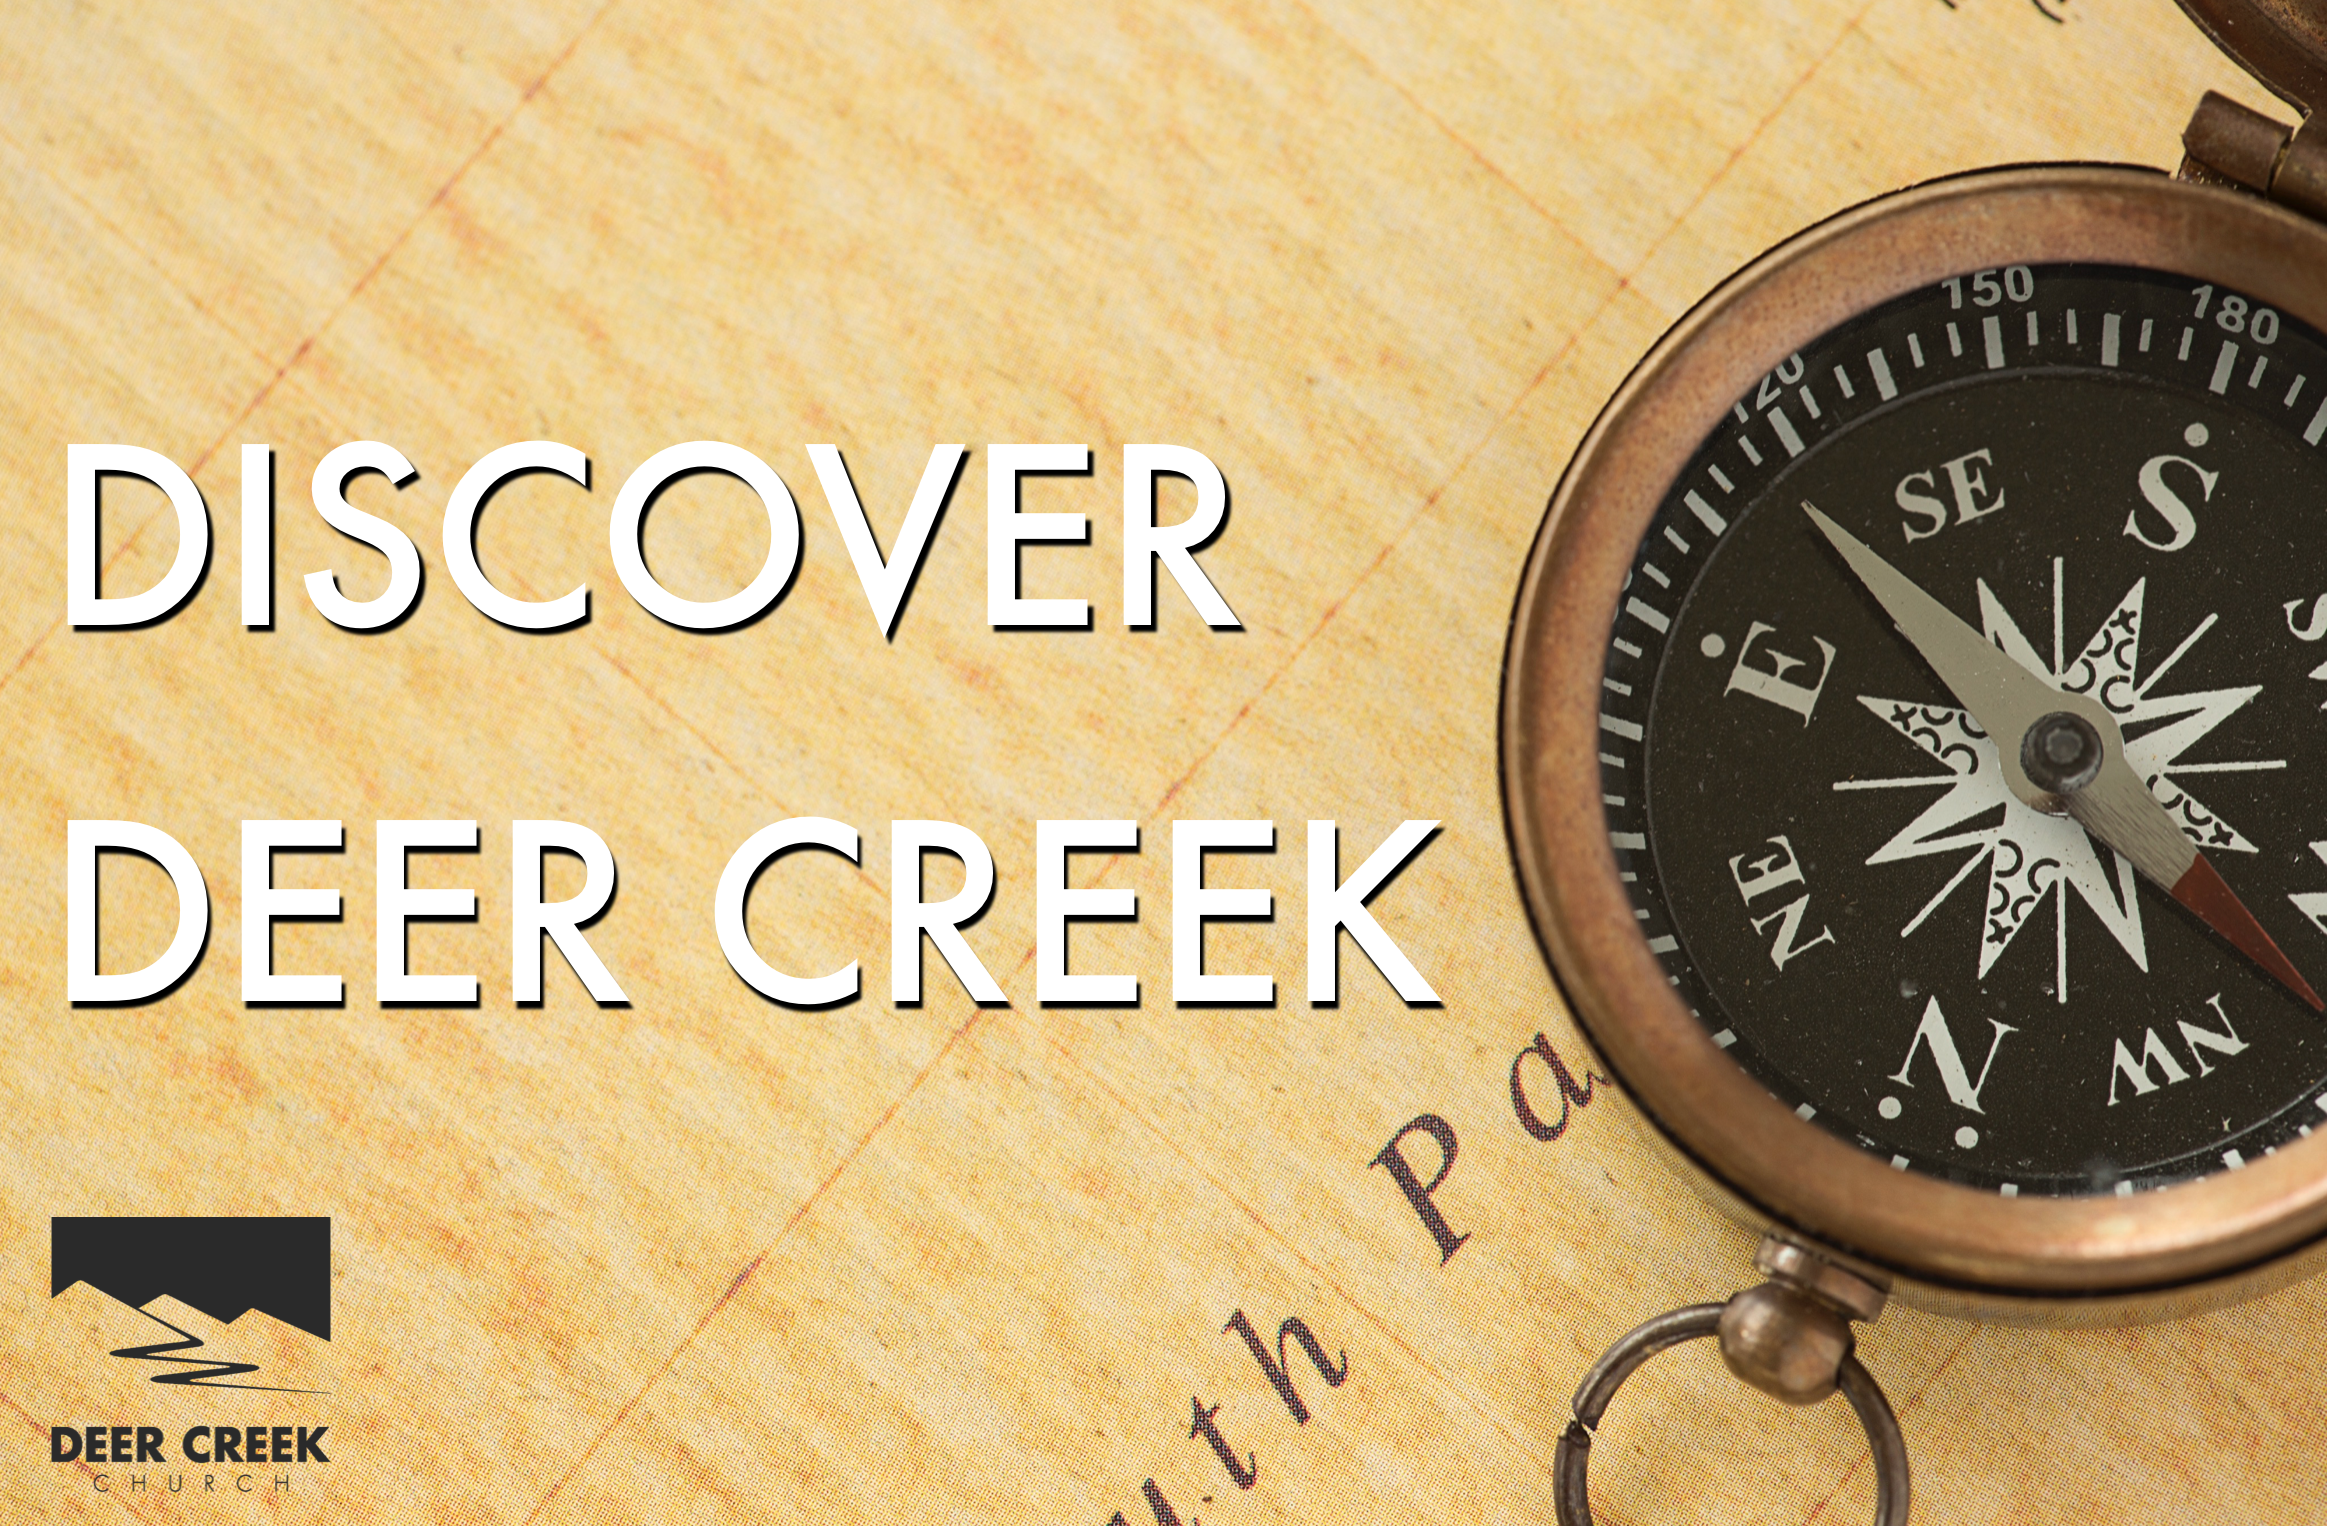 Discover deer creek